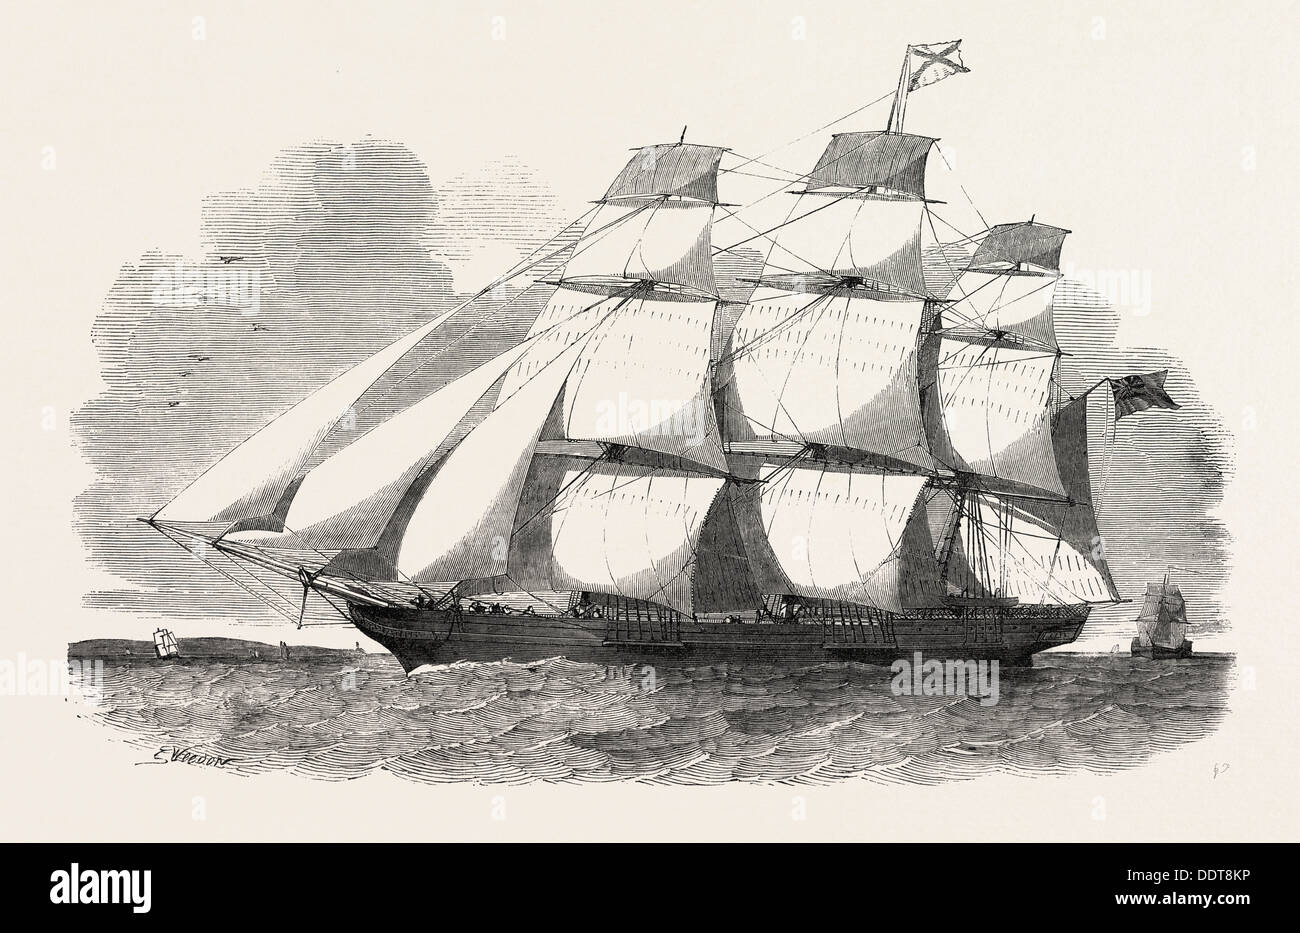 THE ABERGELDIE, ABERDEEN CLIPPER IS A SHIP OF 600 TONS, 1851 engraving - Stock Image